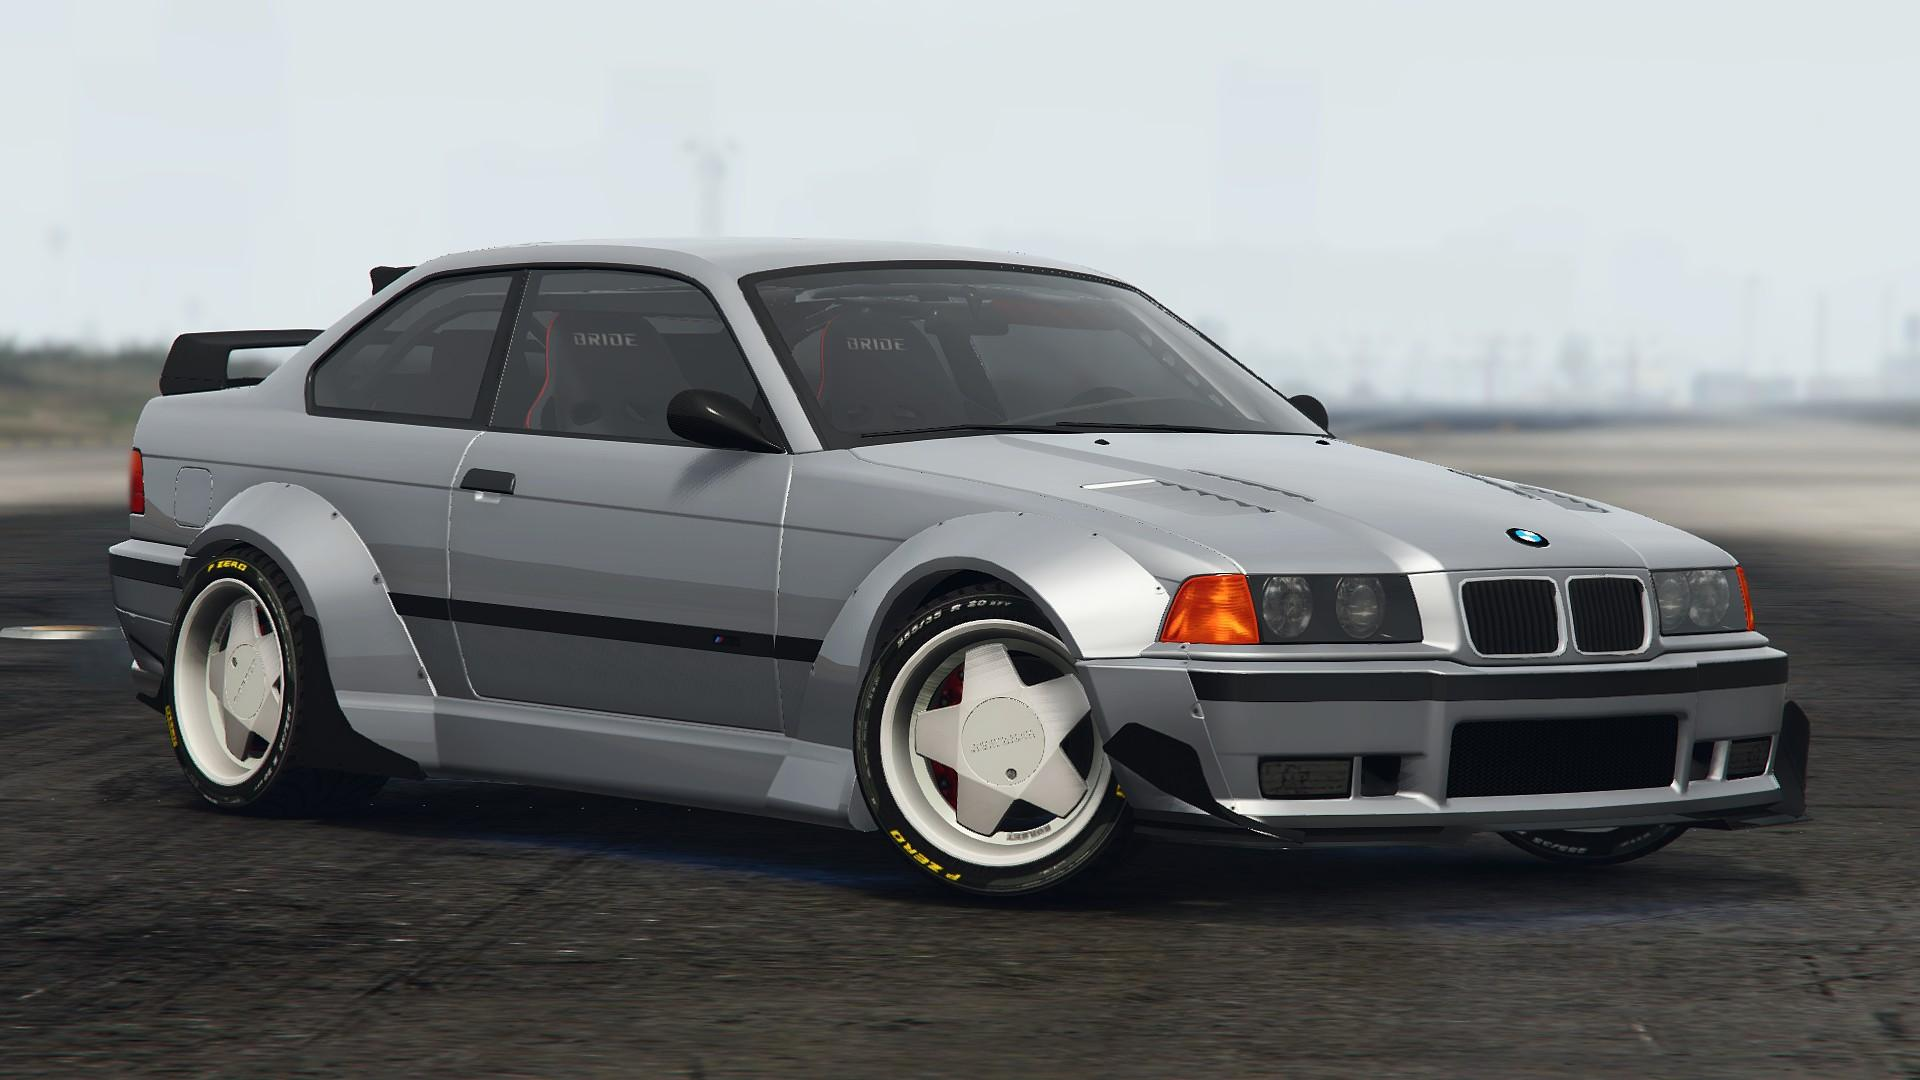 BMW M3 [E36] StreetCustom [Add-On | Tuning] - GTA5-Mods.com